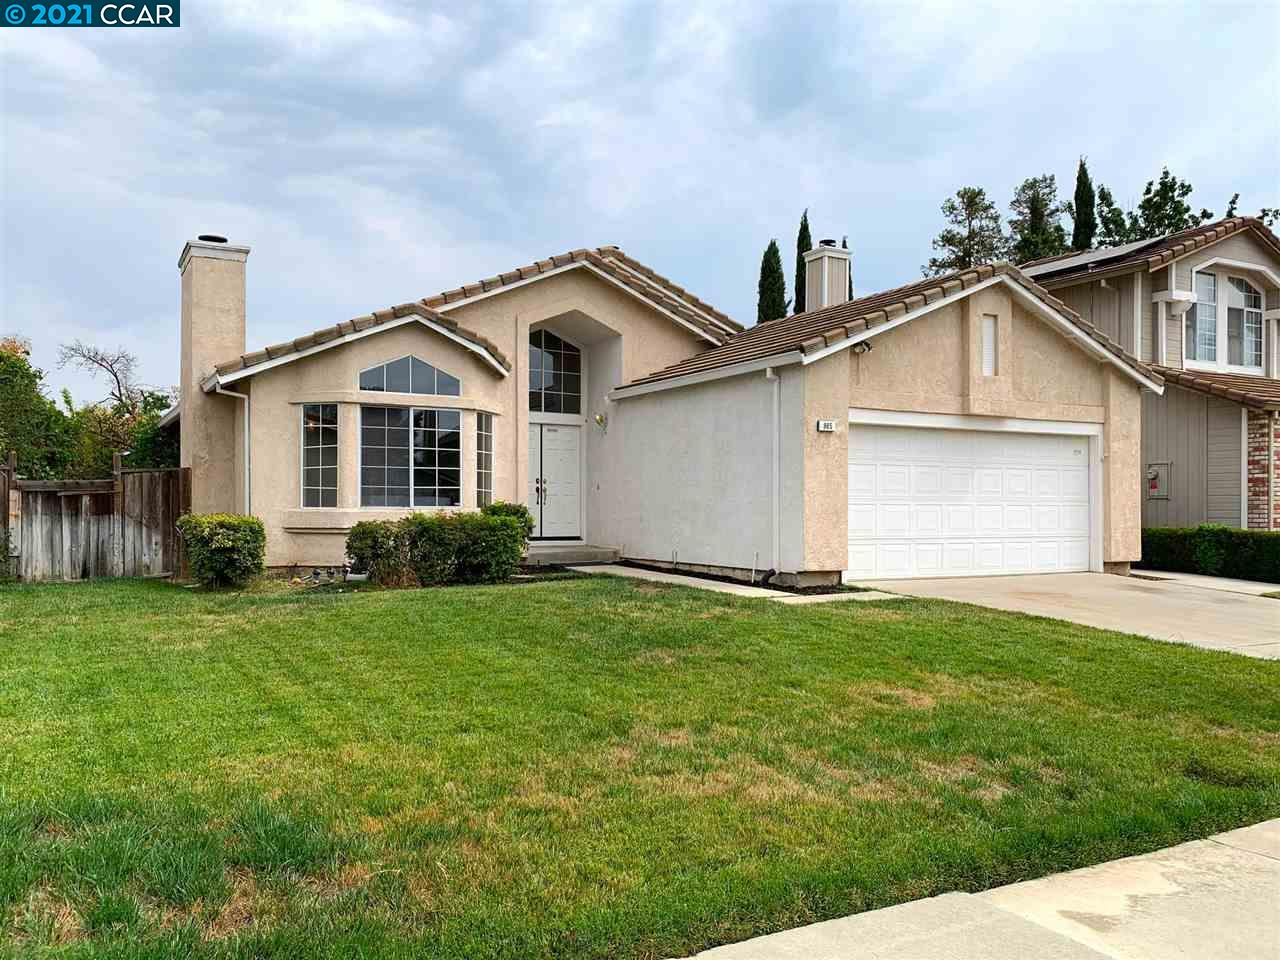 865 Coventry Cir, BRENTWOOD, CA 94513